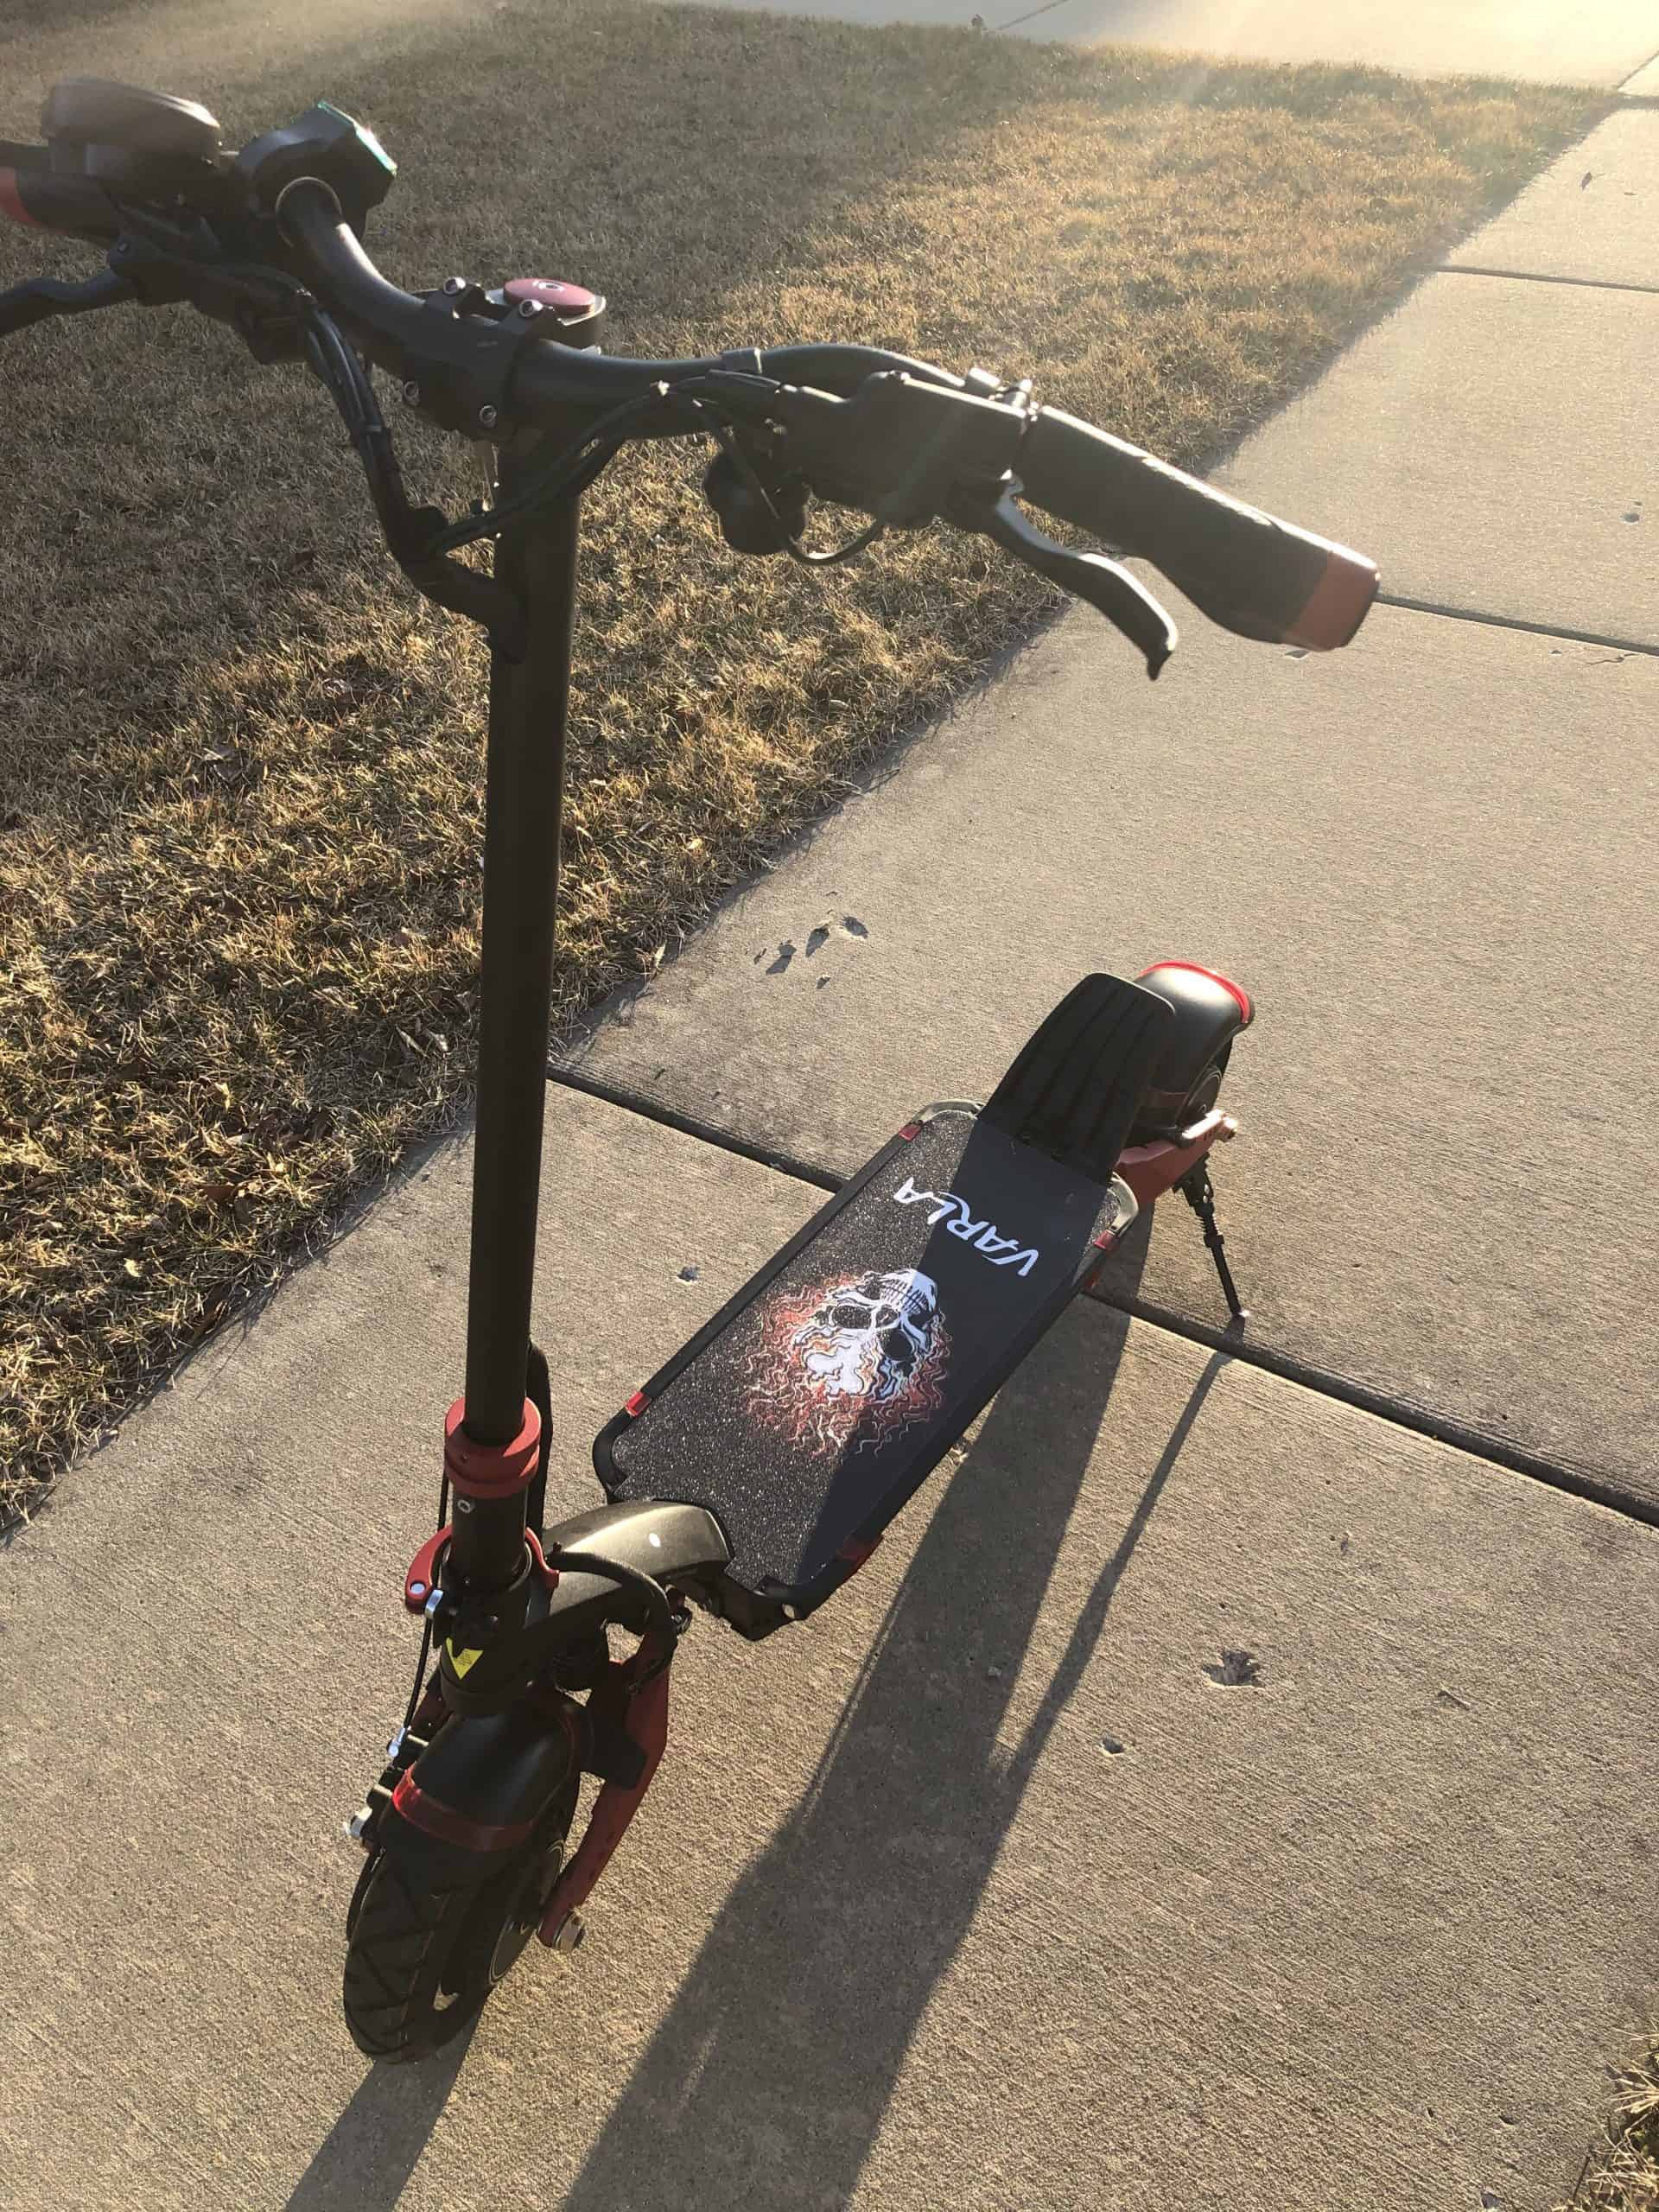 Varla Eagle One Electric Scooter Review 2